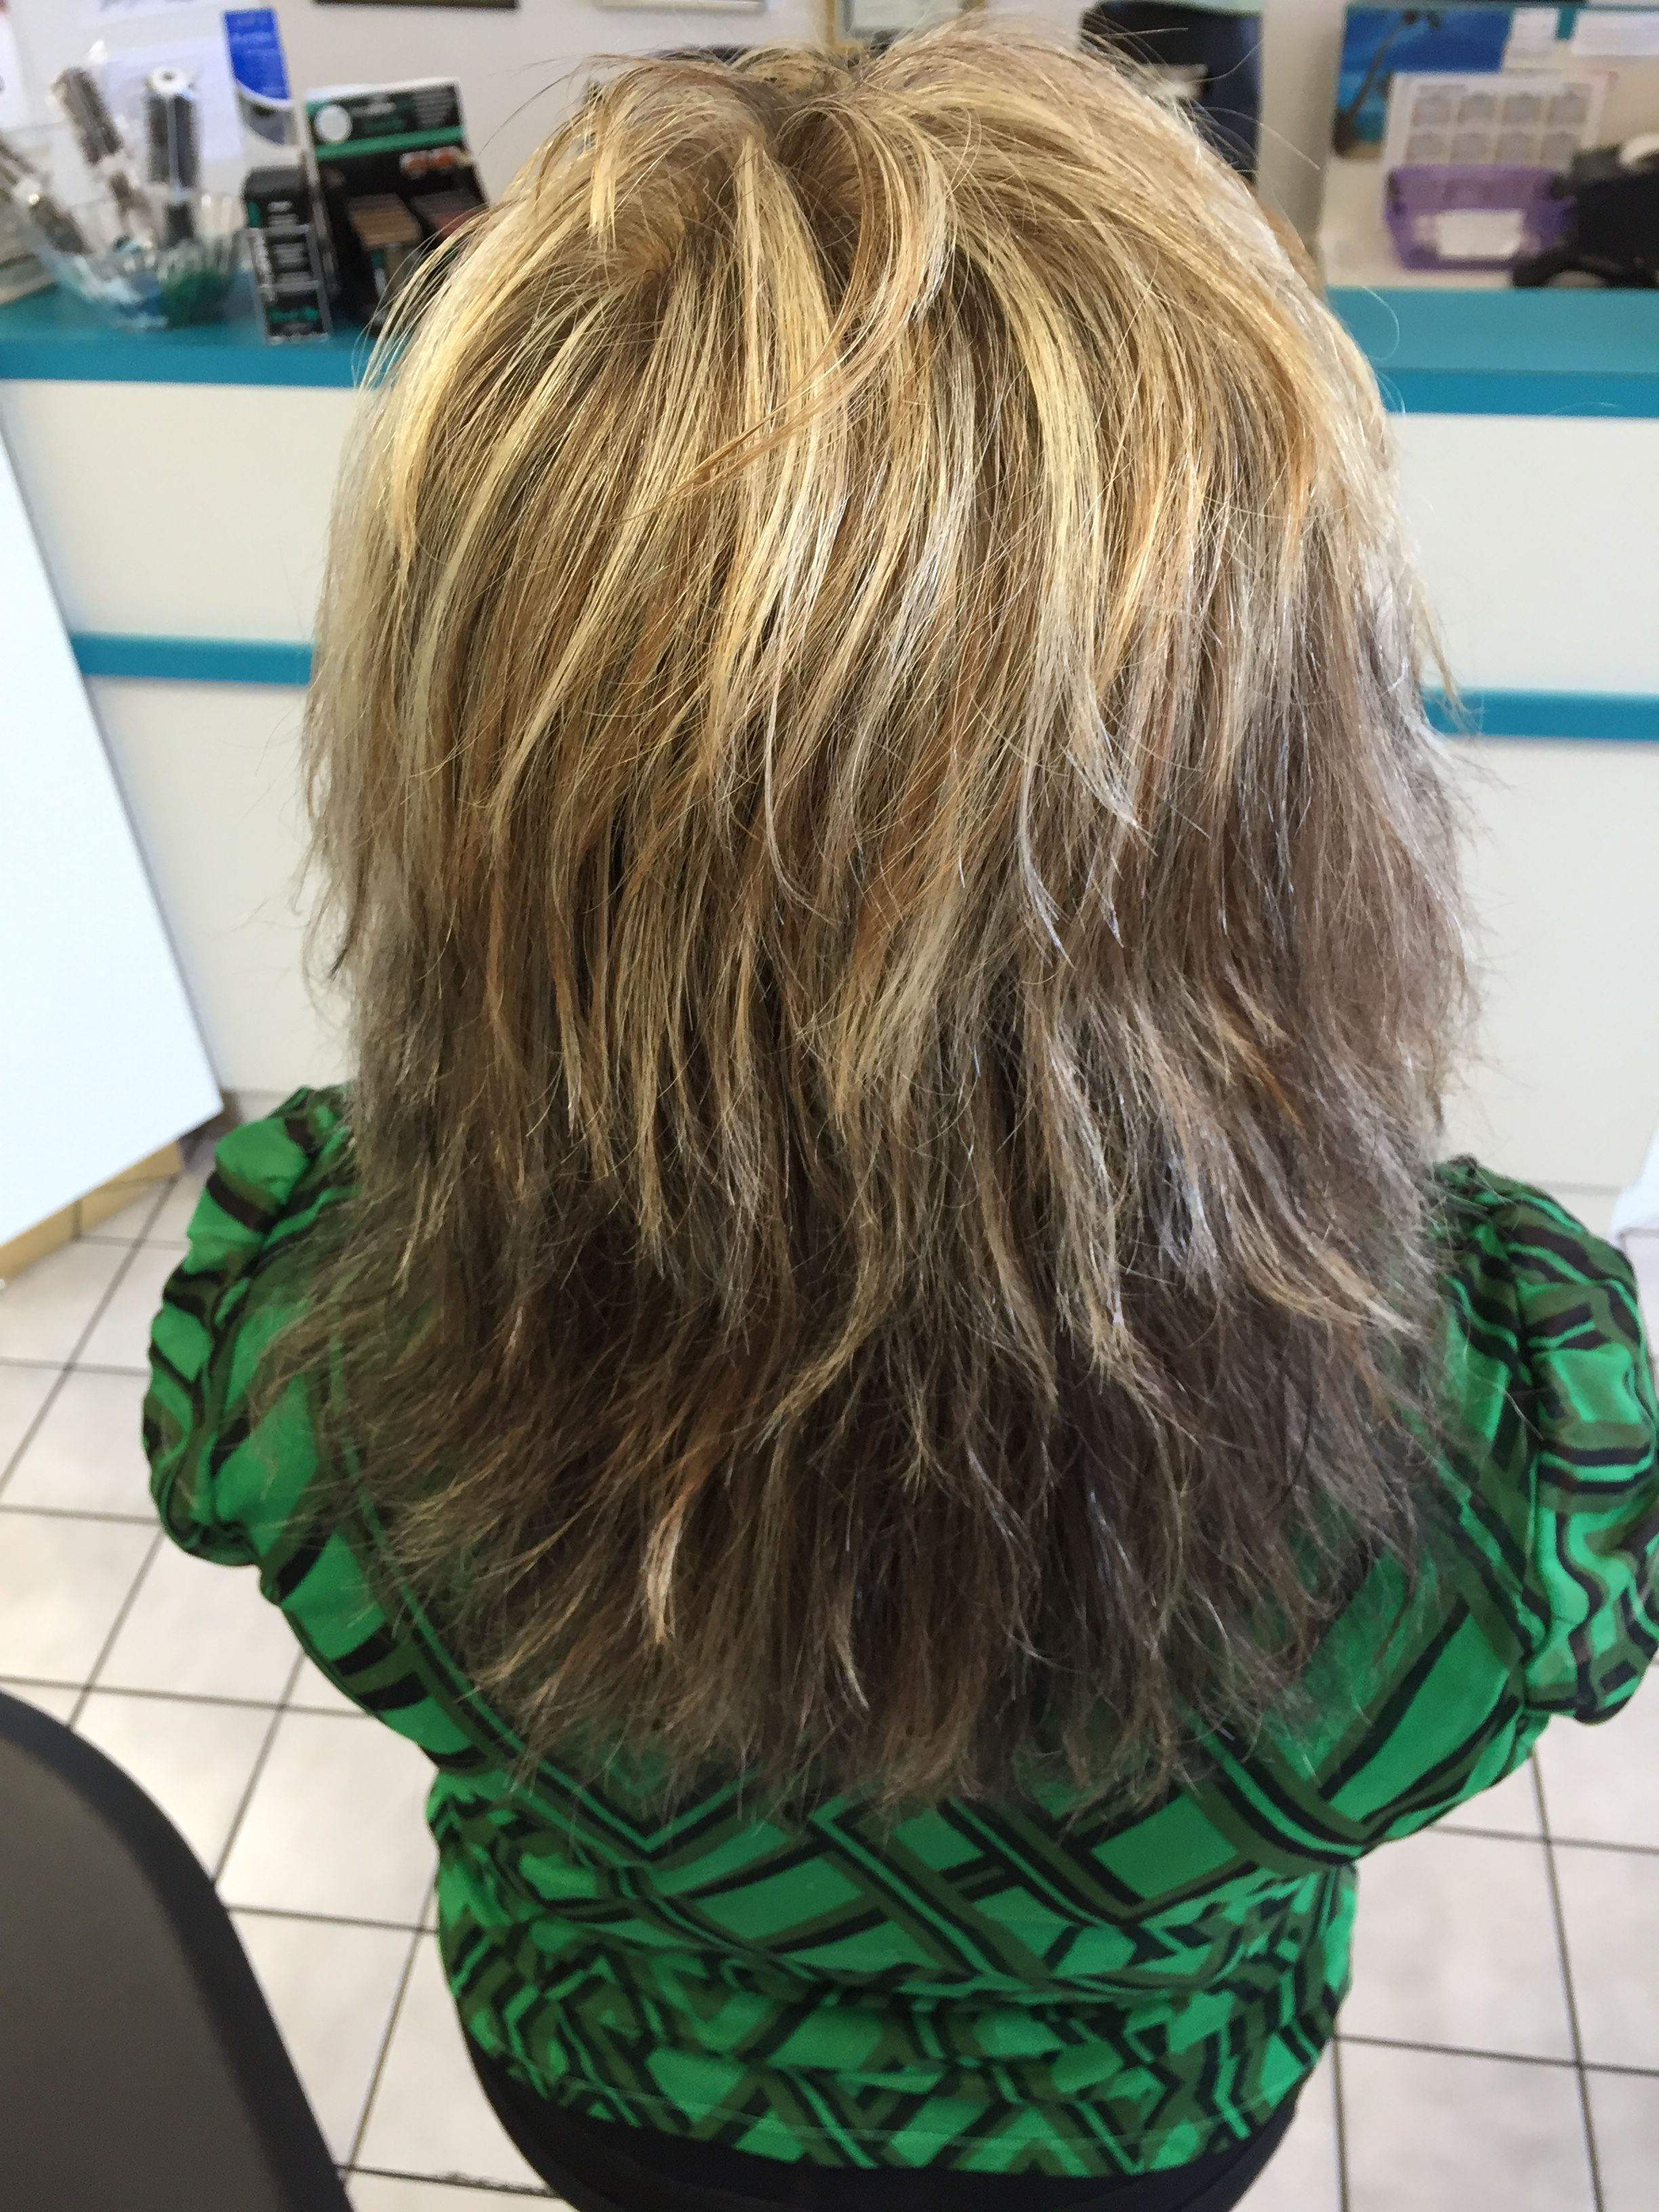 High Contrast Color and Highlight #Hair #Hairstyle #Fashion